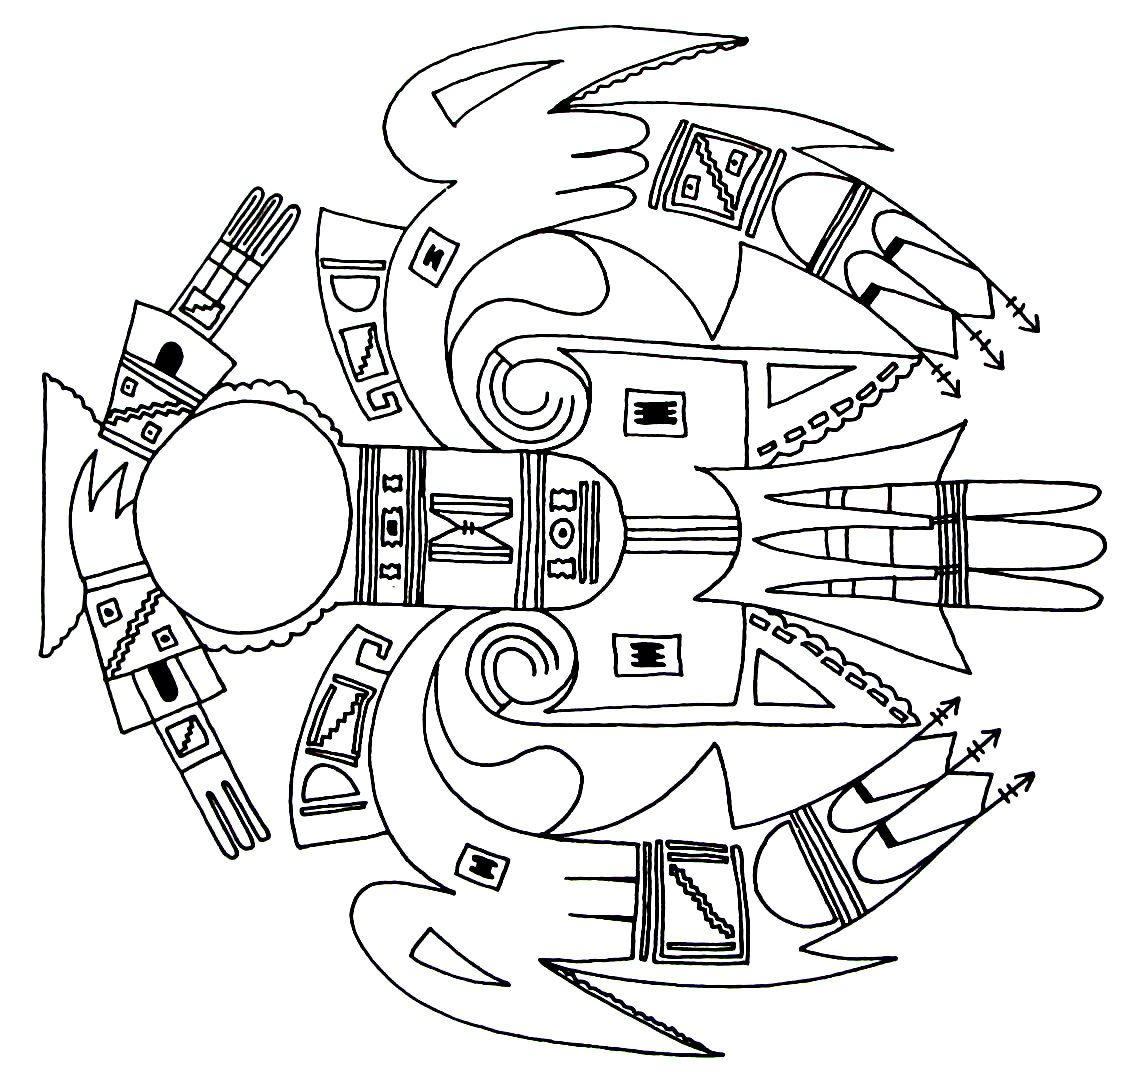 A Thunderbird with cloud and arrow symbols from the Nahane